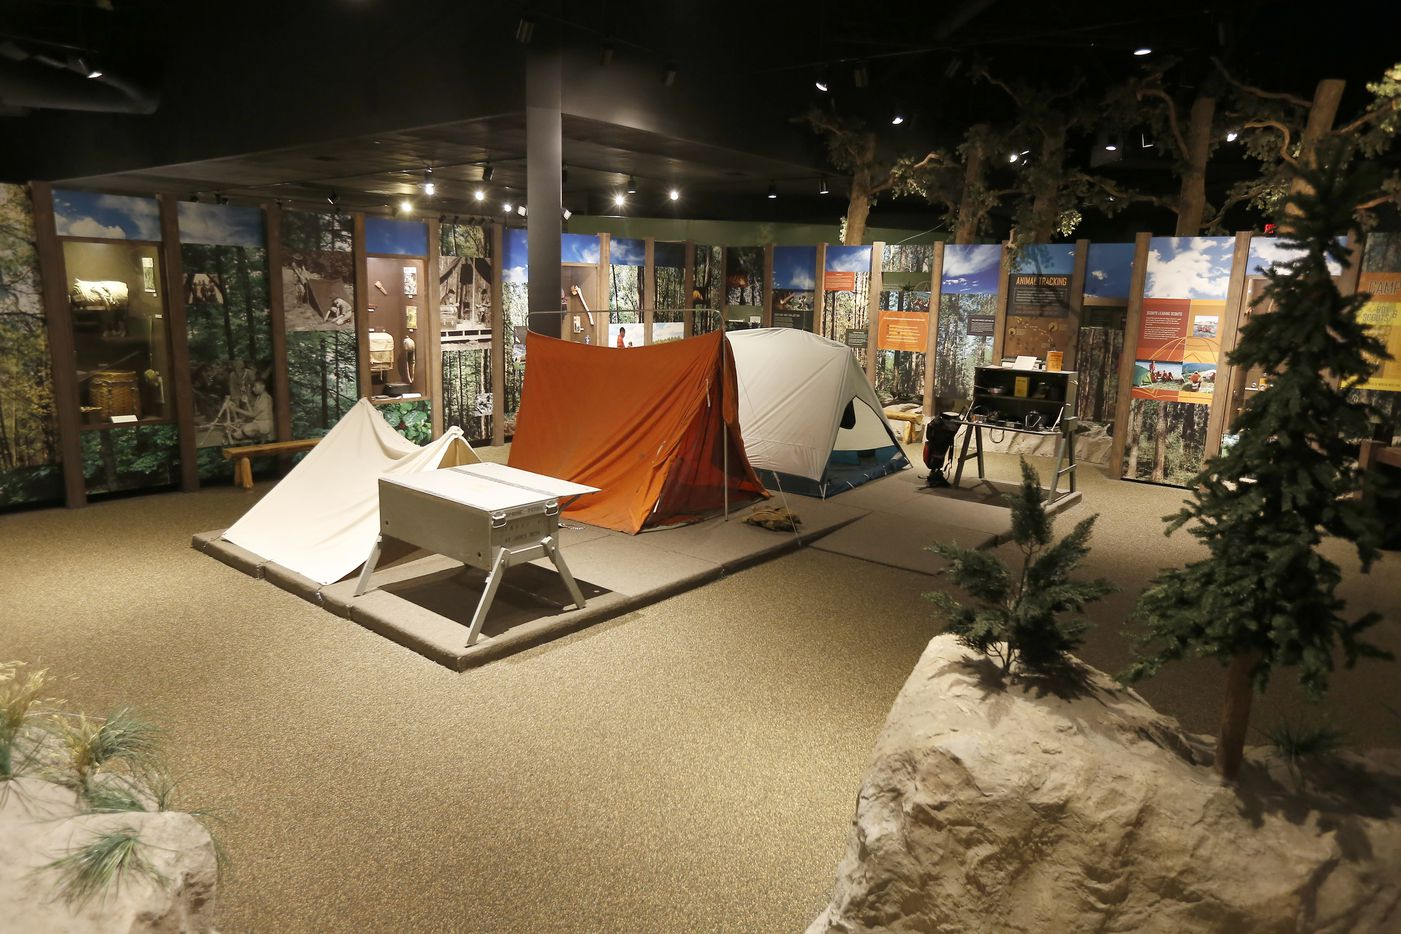 A camping exhibit at the National Scouting Museum. (2015 File Photo/Brandon Wade)